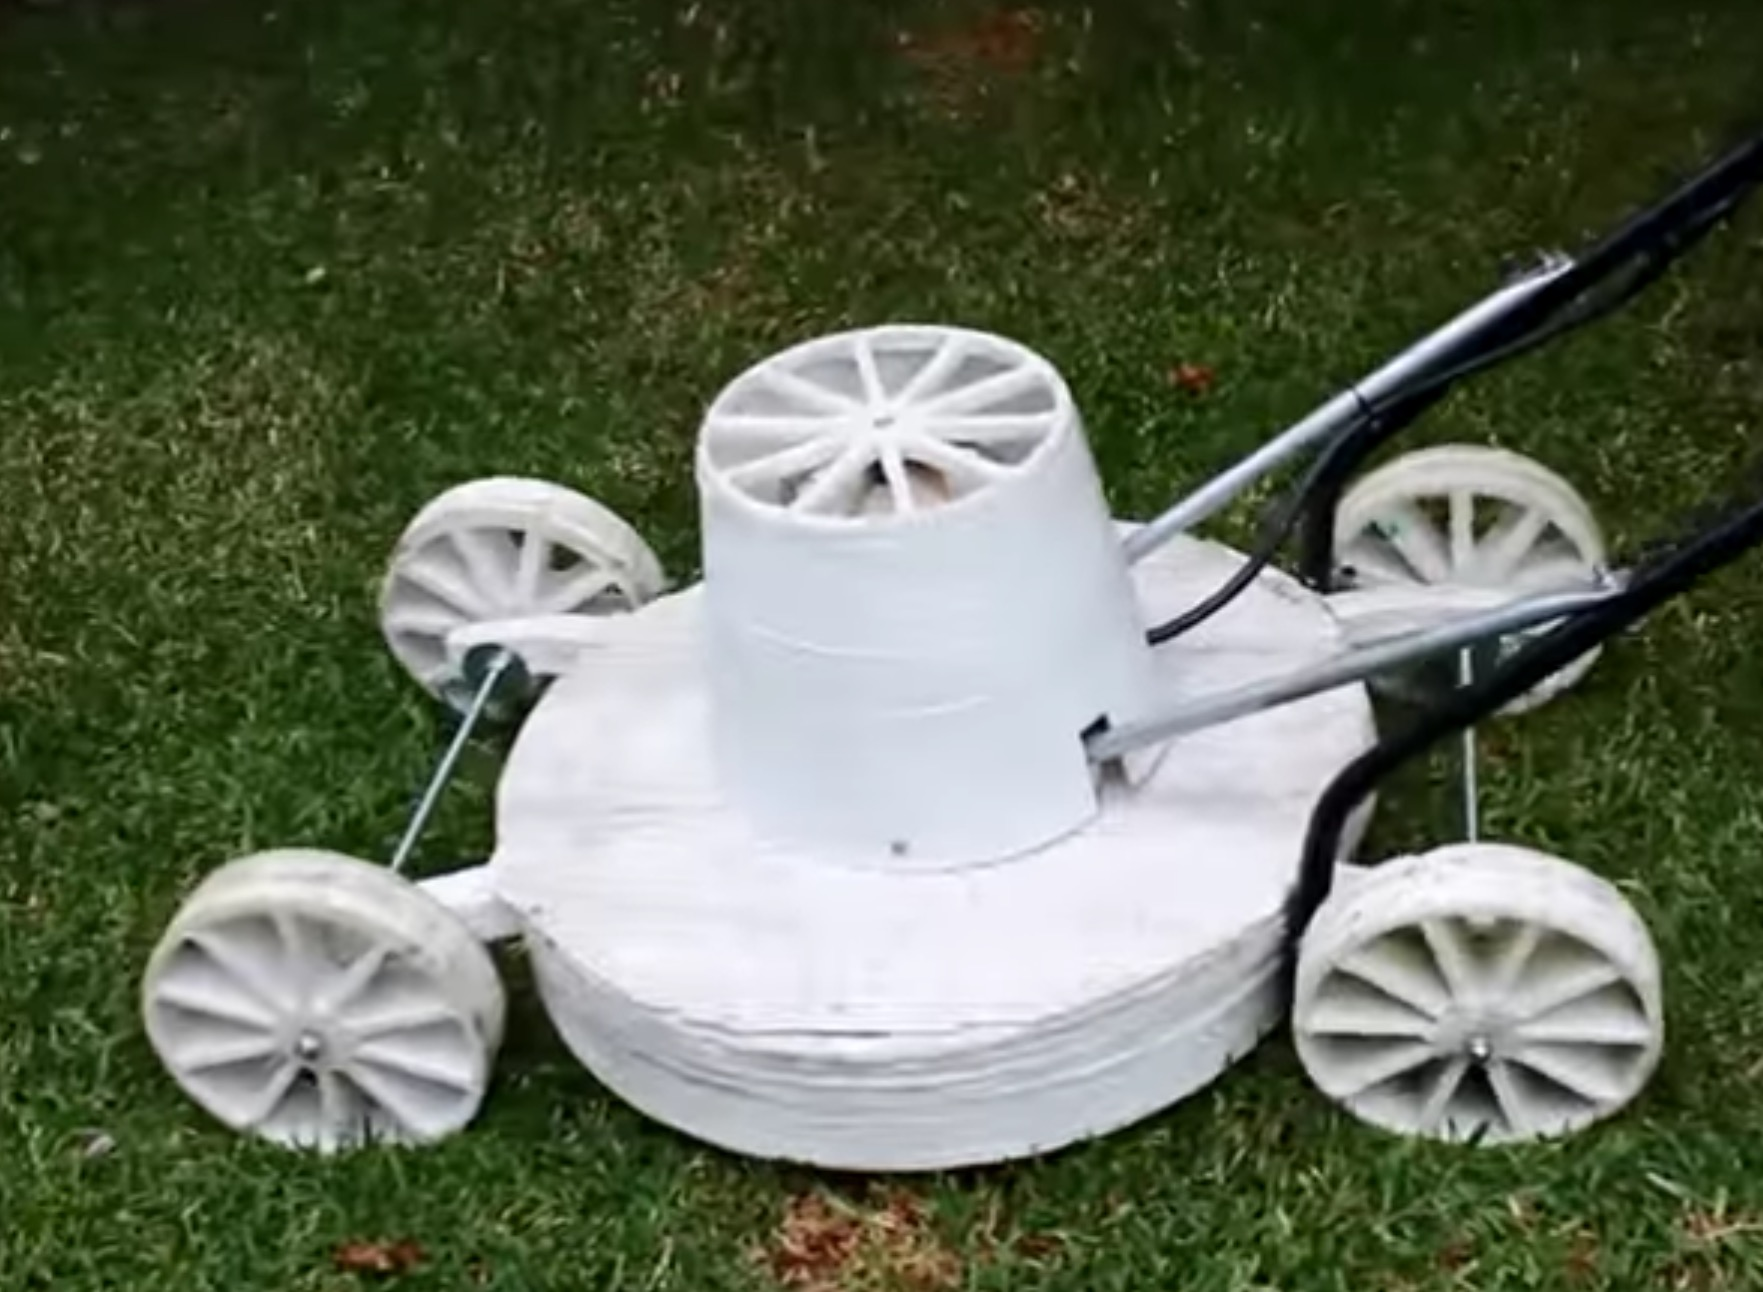 A functioning lawnmower produced on the Cheetah 2 large format 3D printer